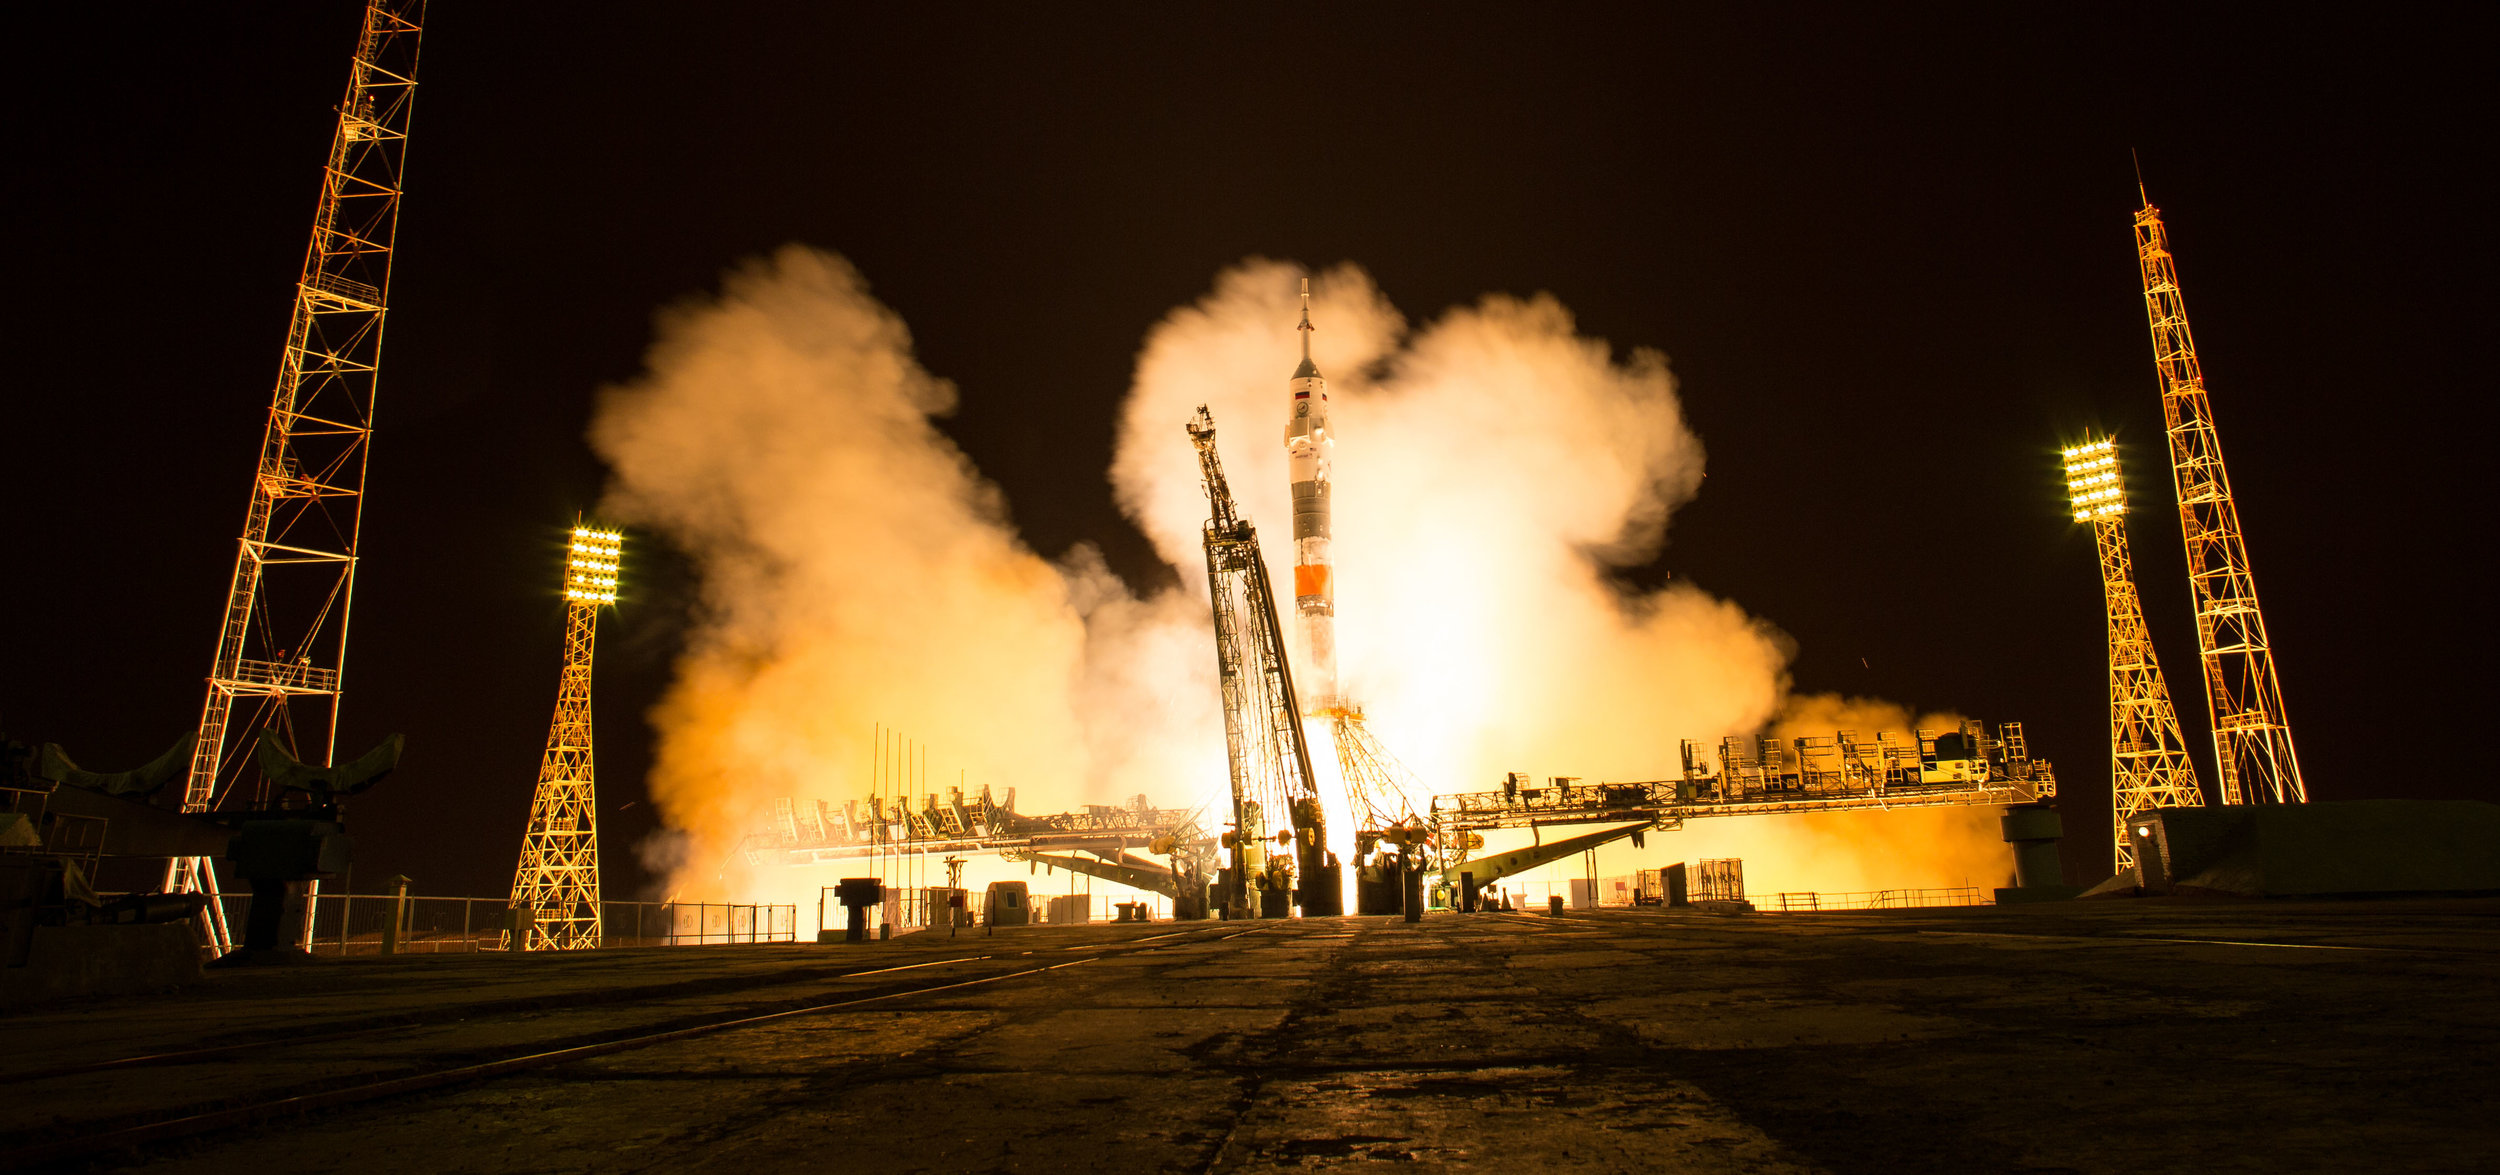 File photo of Soyuz MS-08 launching in March 2018. Credit: NASA/Joel Kowsky